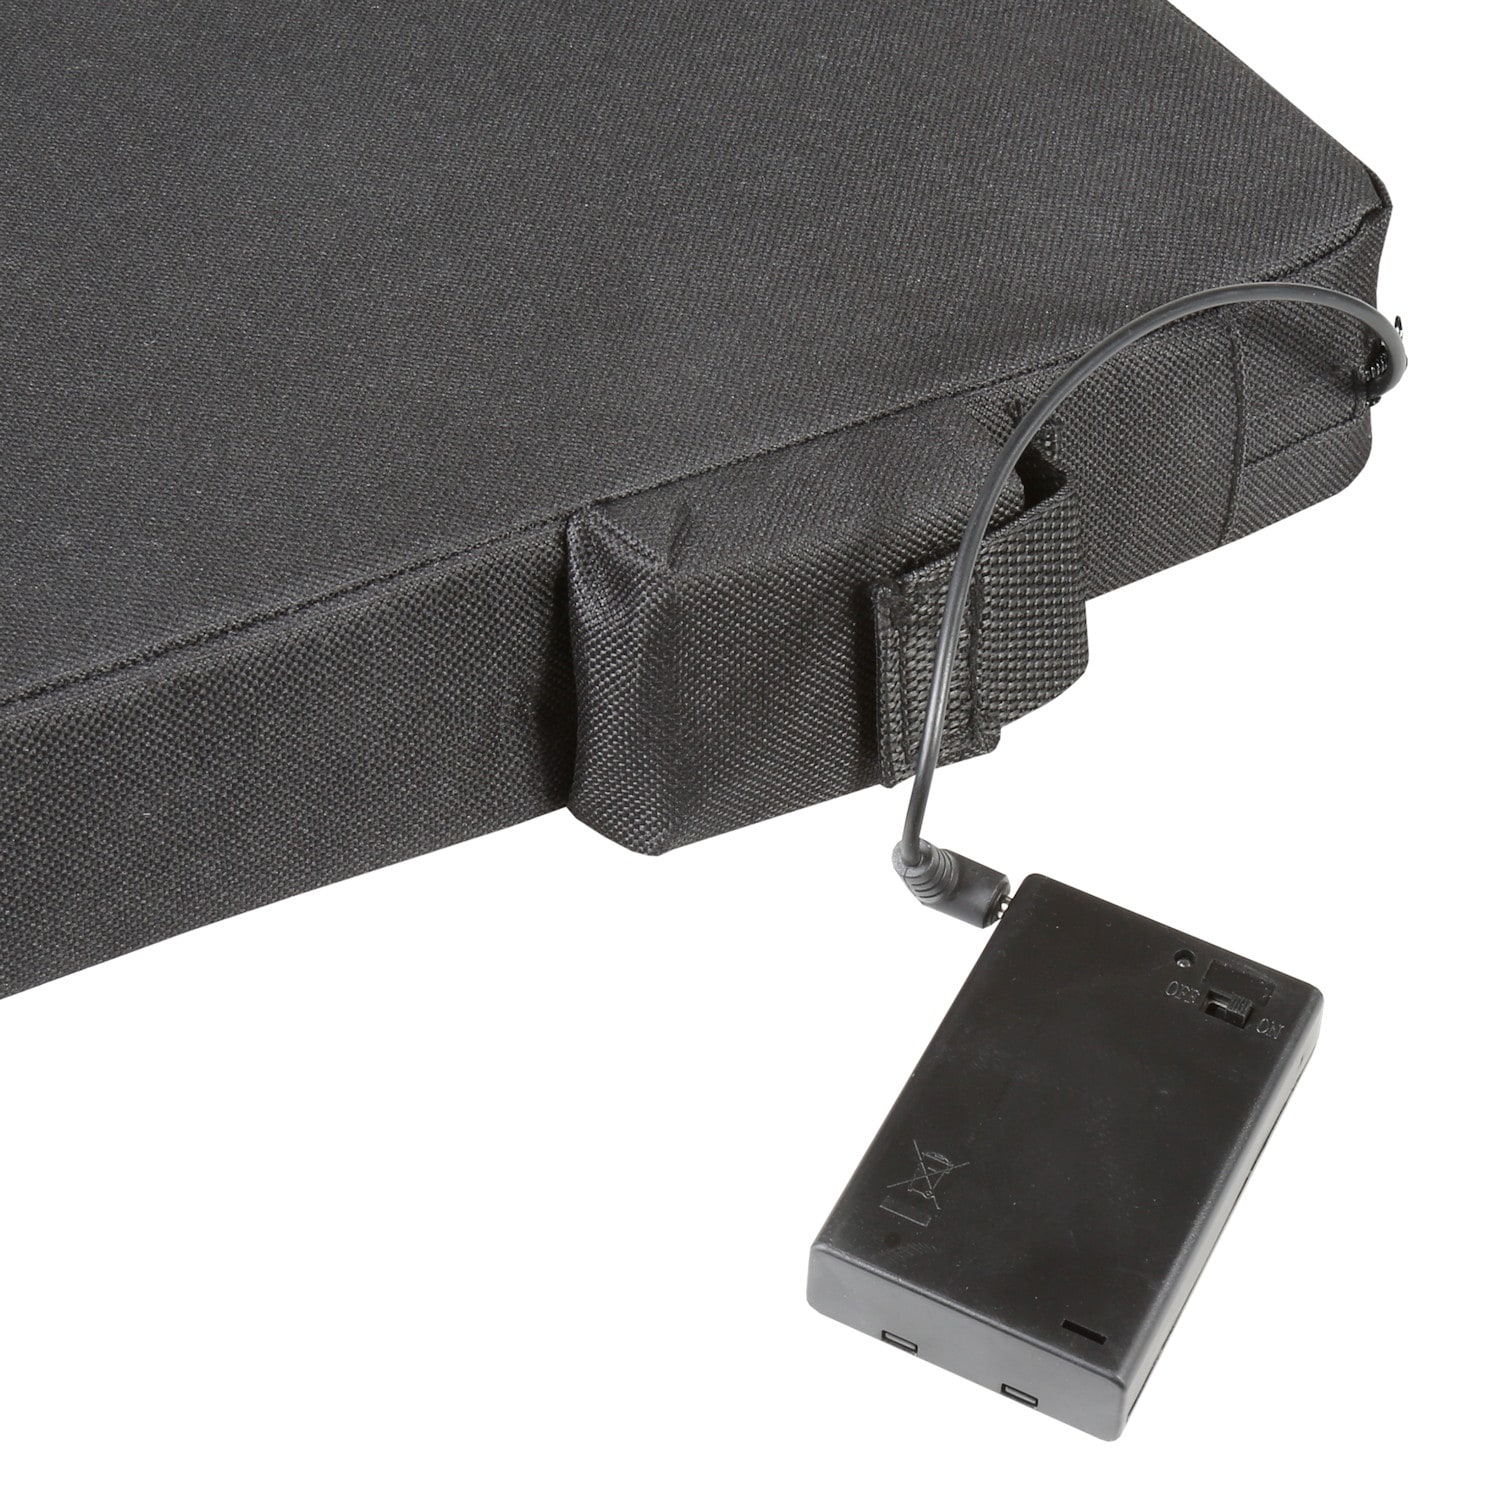 Shop Bandwagon Portable Heated Seat Cushion Battery Operated Warming Foam Chair Pad With Removable Cover Overstock 30783924